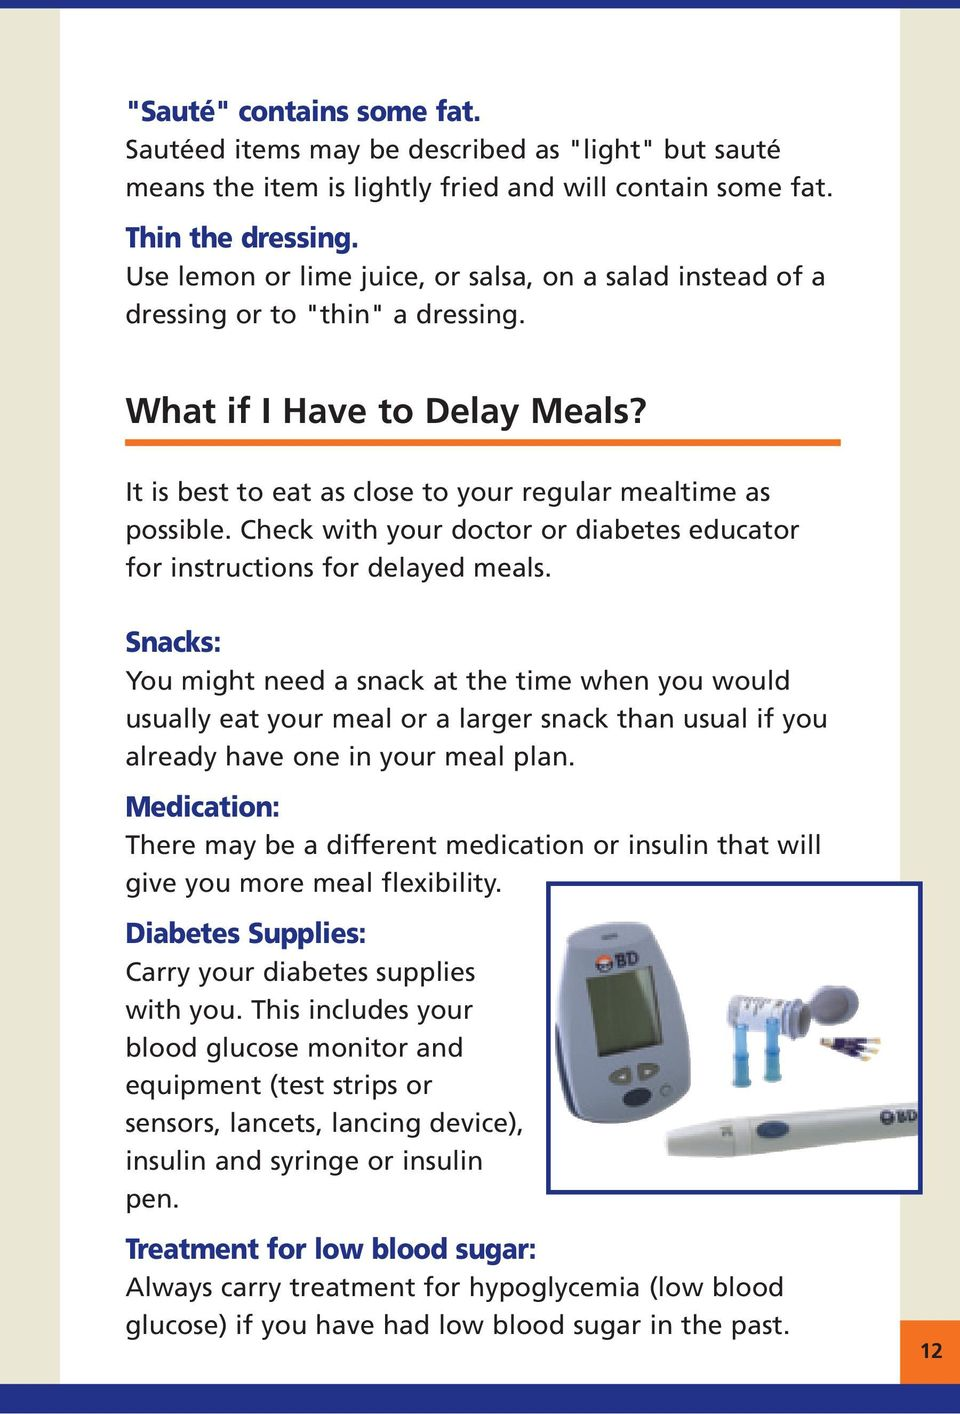 Check with your doctor or diabetes educator for instructions for delayed meals.